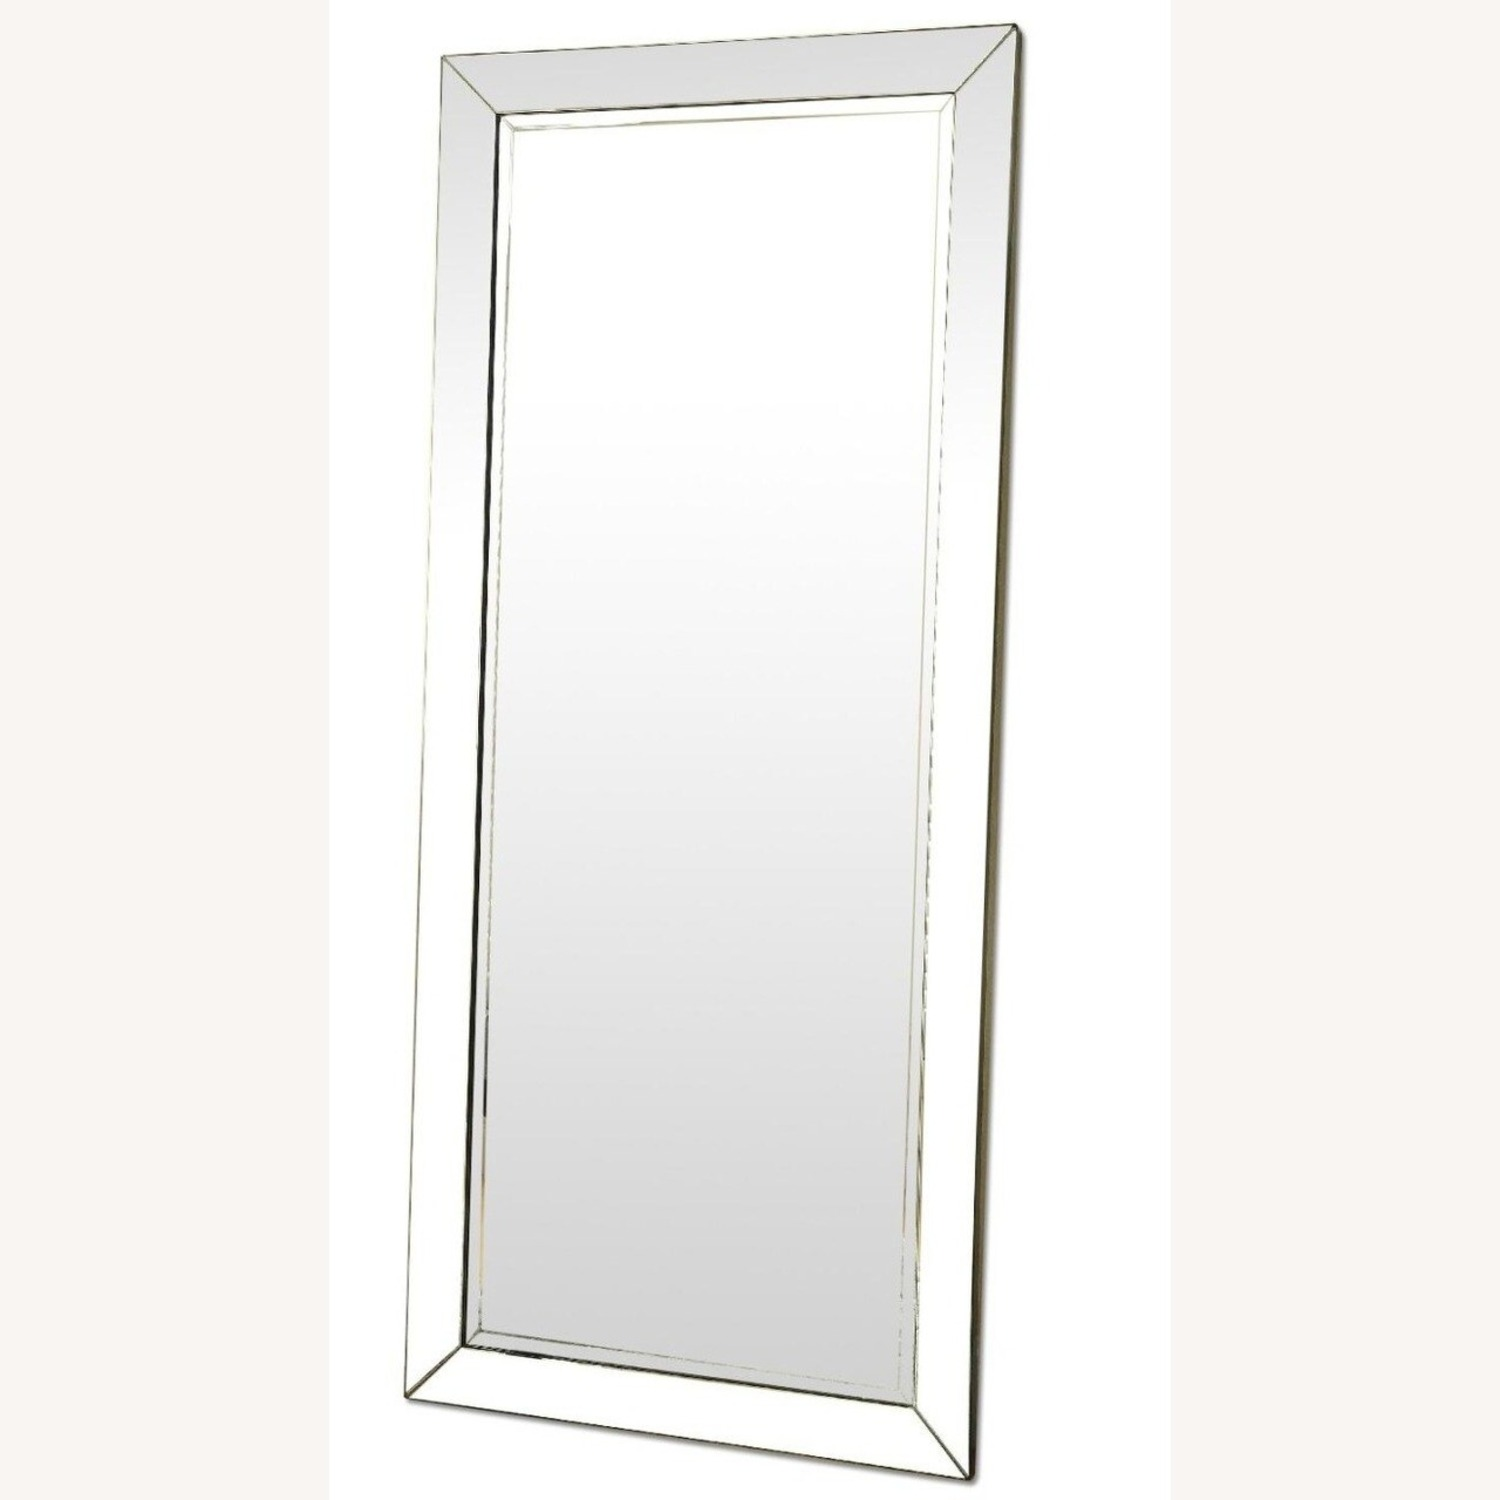 Contemporary Floor Mirror With Beveled Edges - image-1